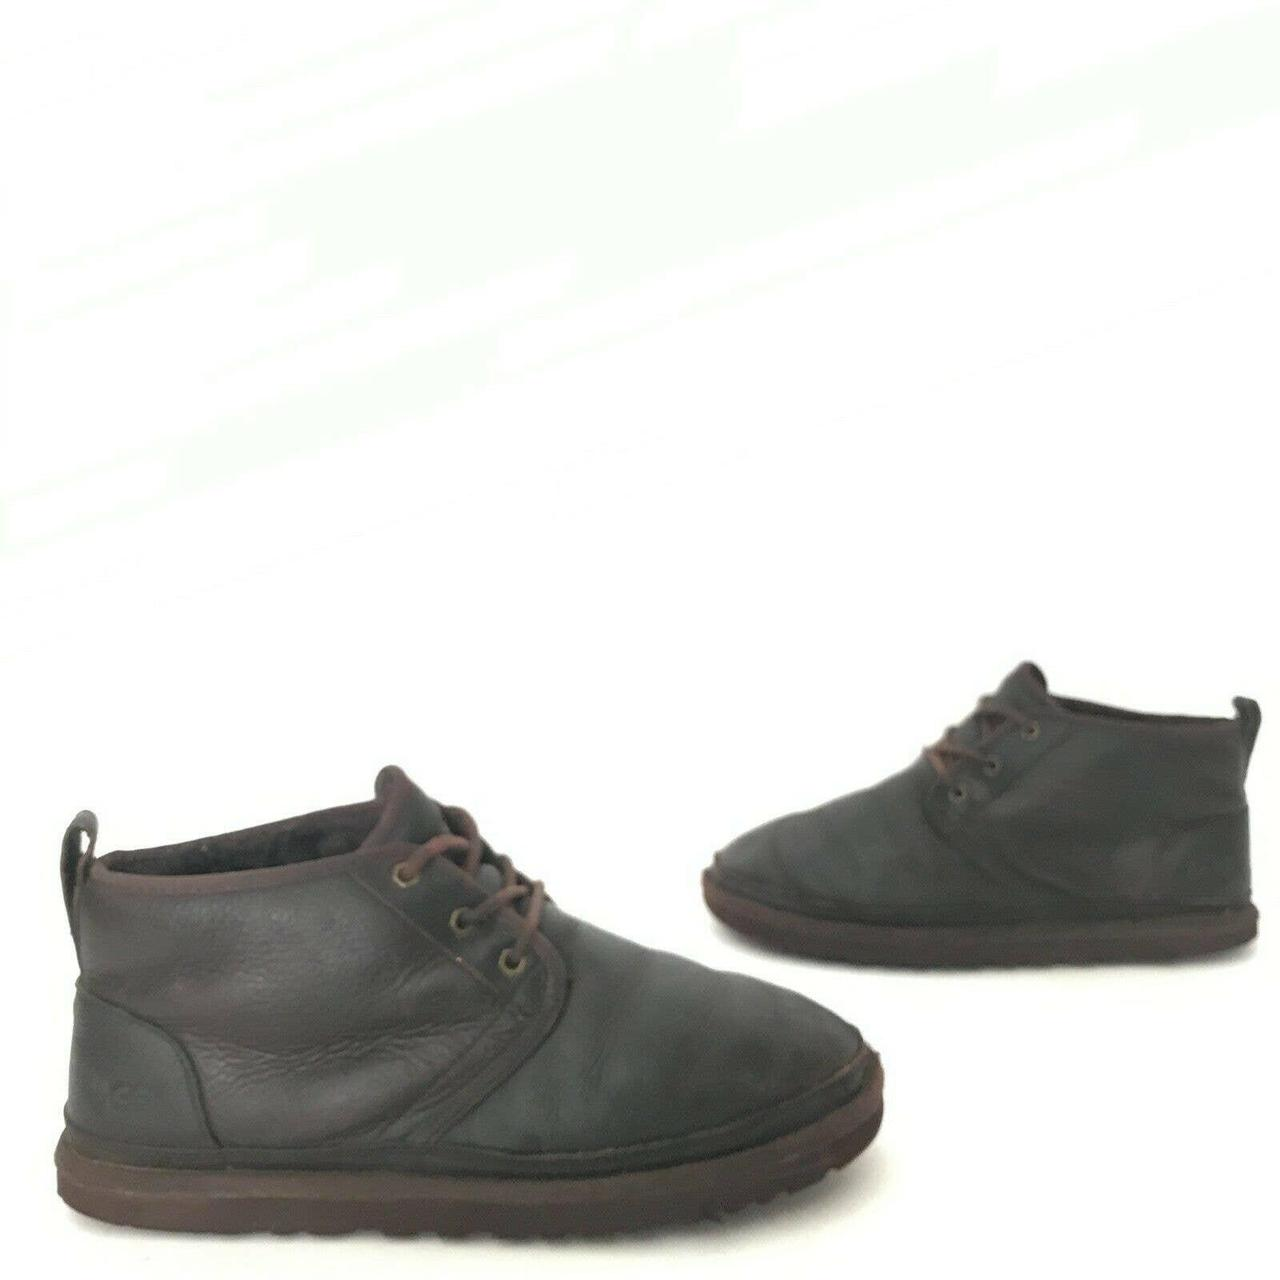 Product Image 1 - Round toe. Brown pebbled leather